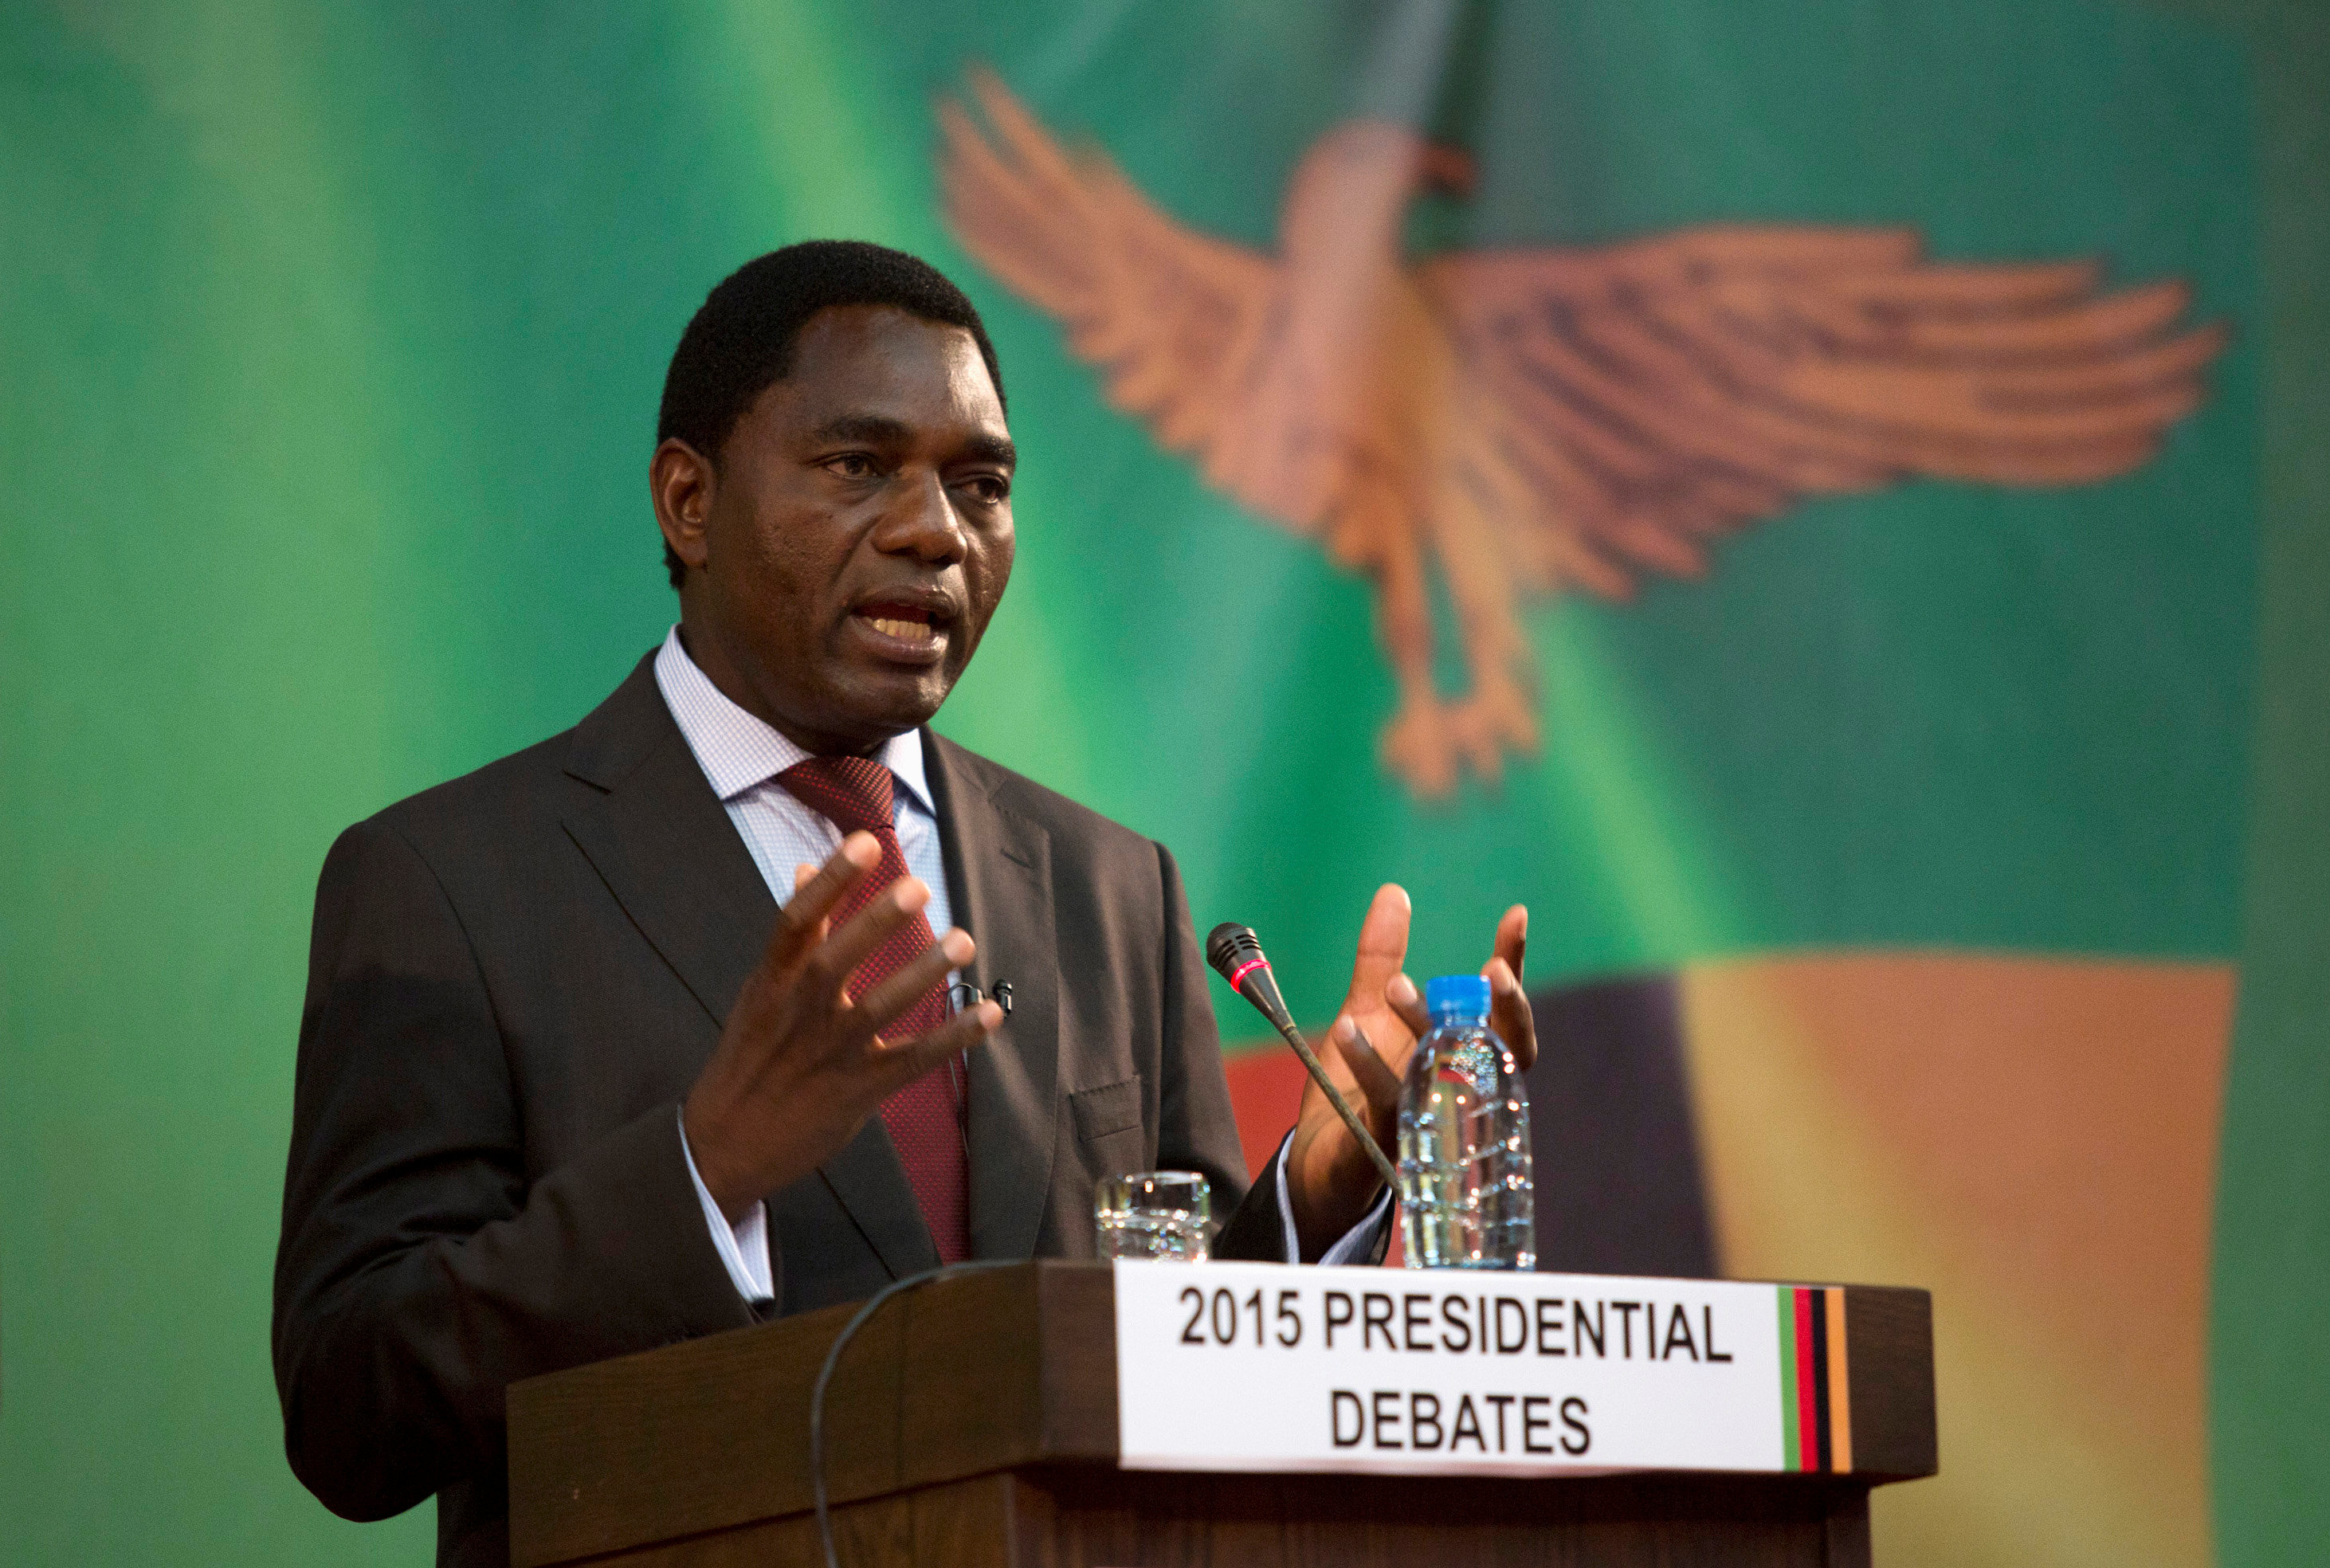 Zambian opposition leader charged with trying to overthrow government